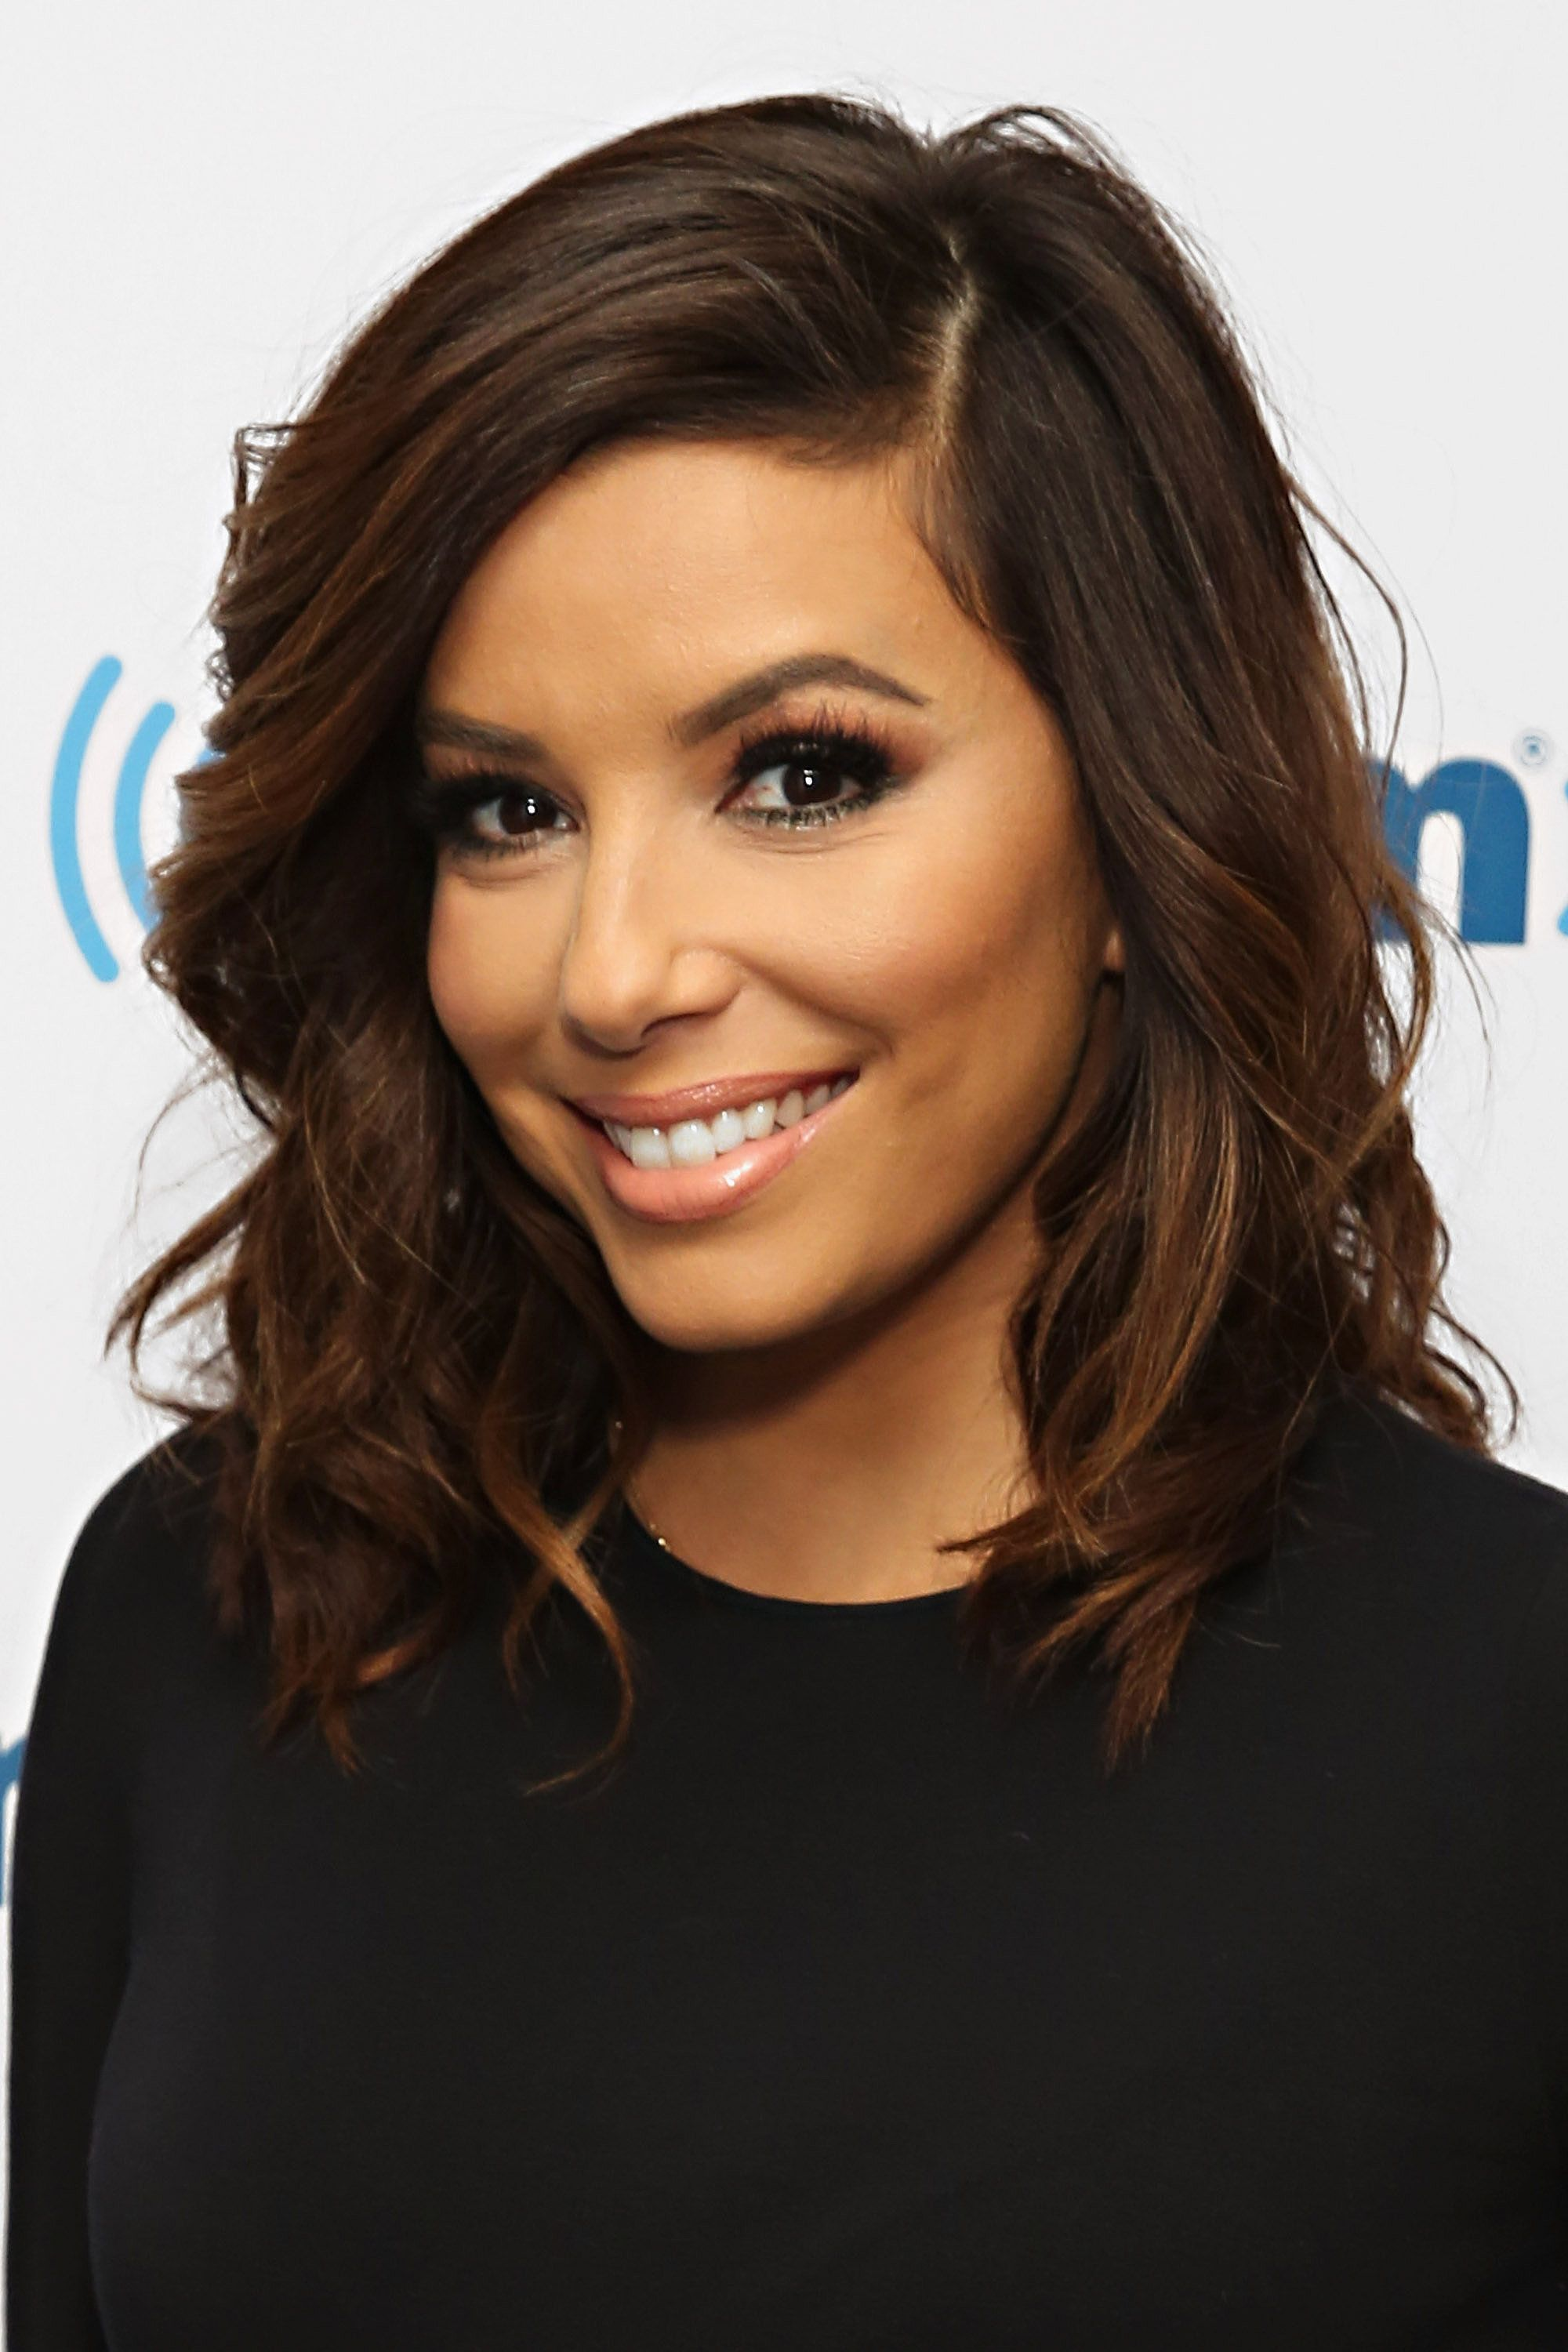 Eva Longoria: Midlength and Soft